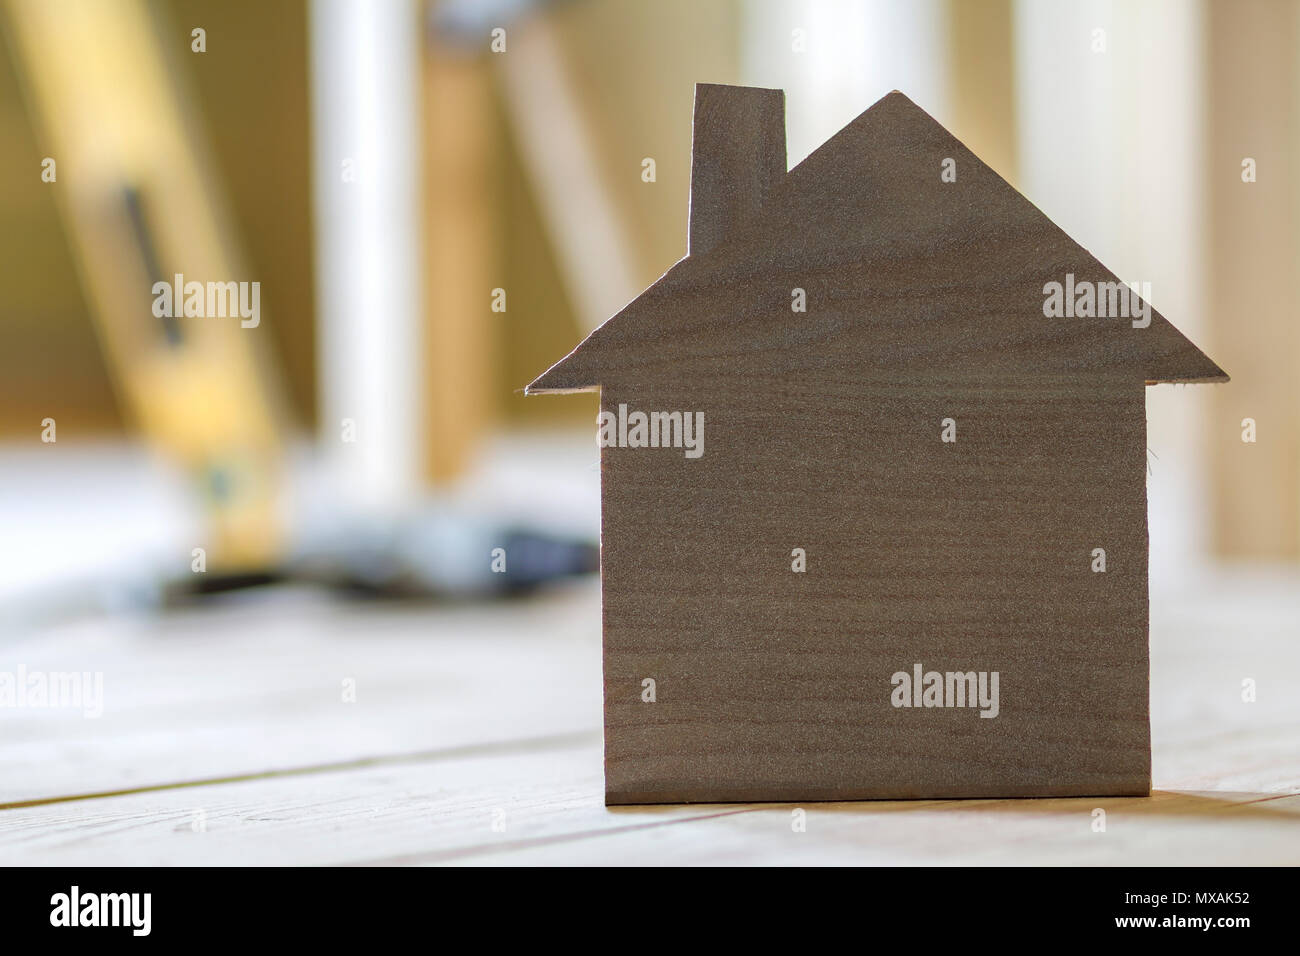 Close-up of simple small brown model house on blurred